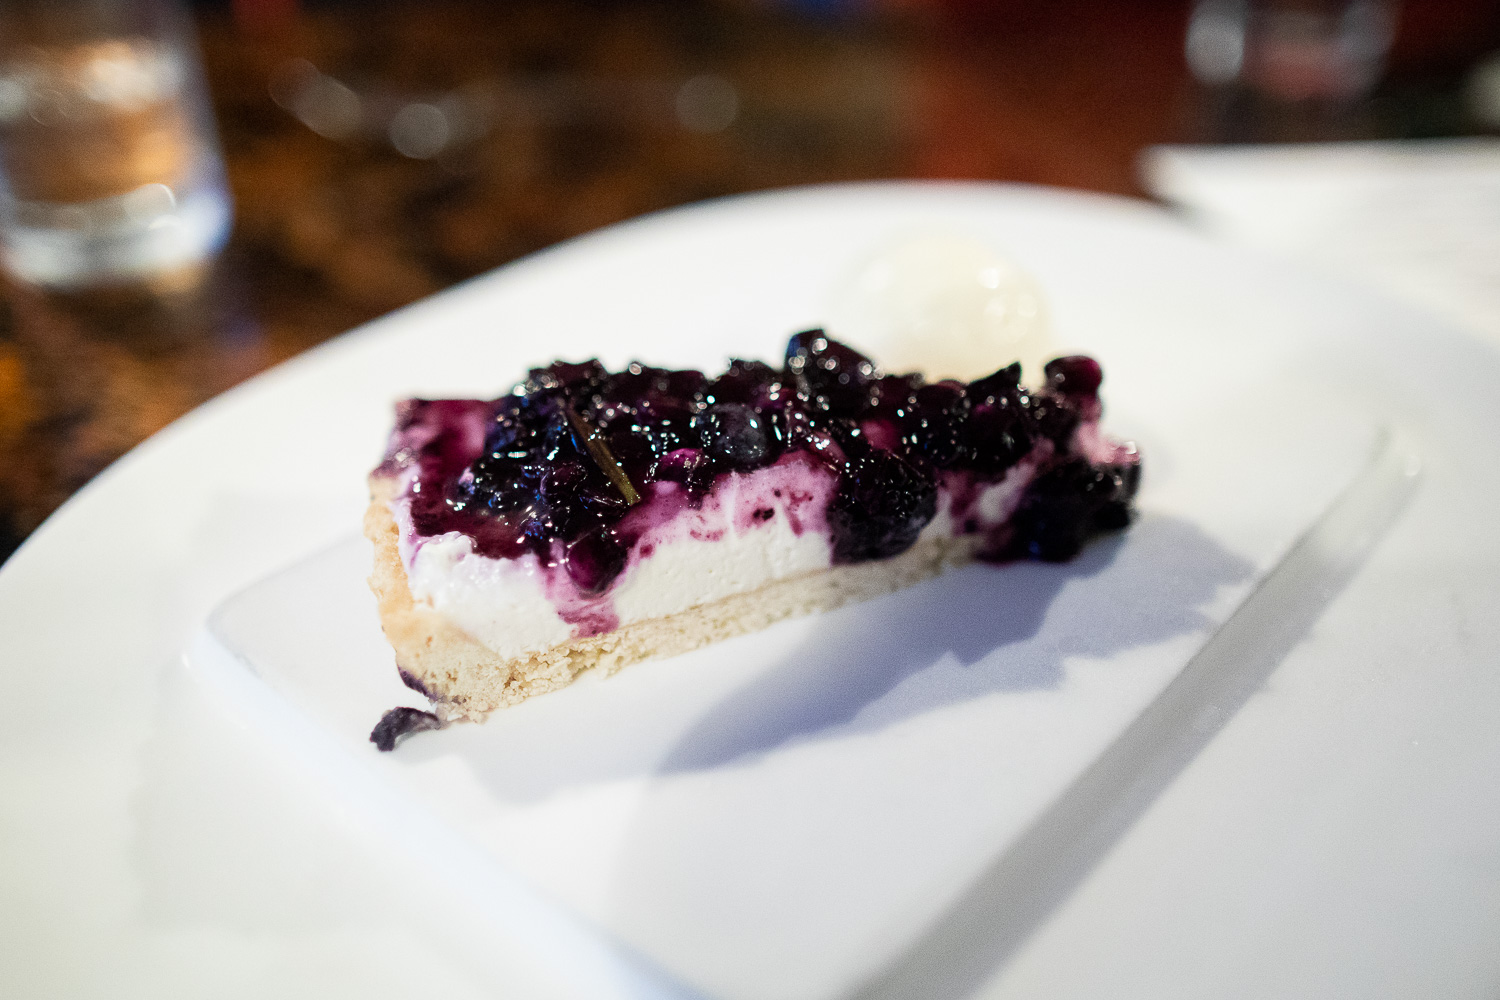 Blueberry cheesecake and ice cream.